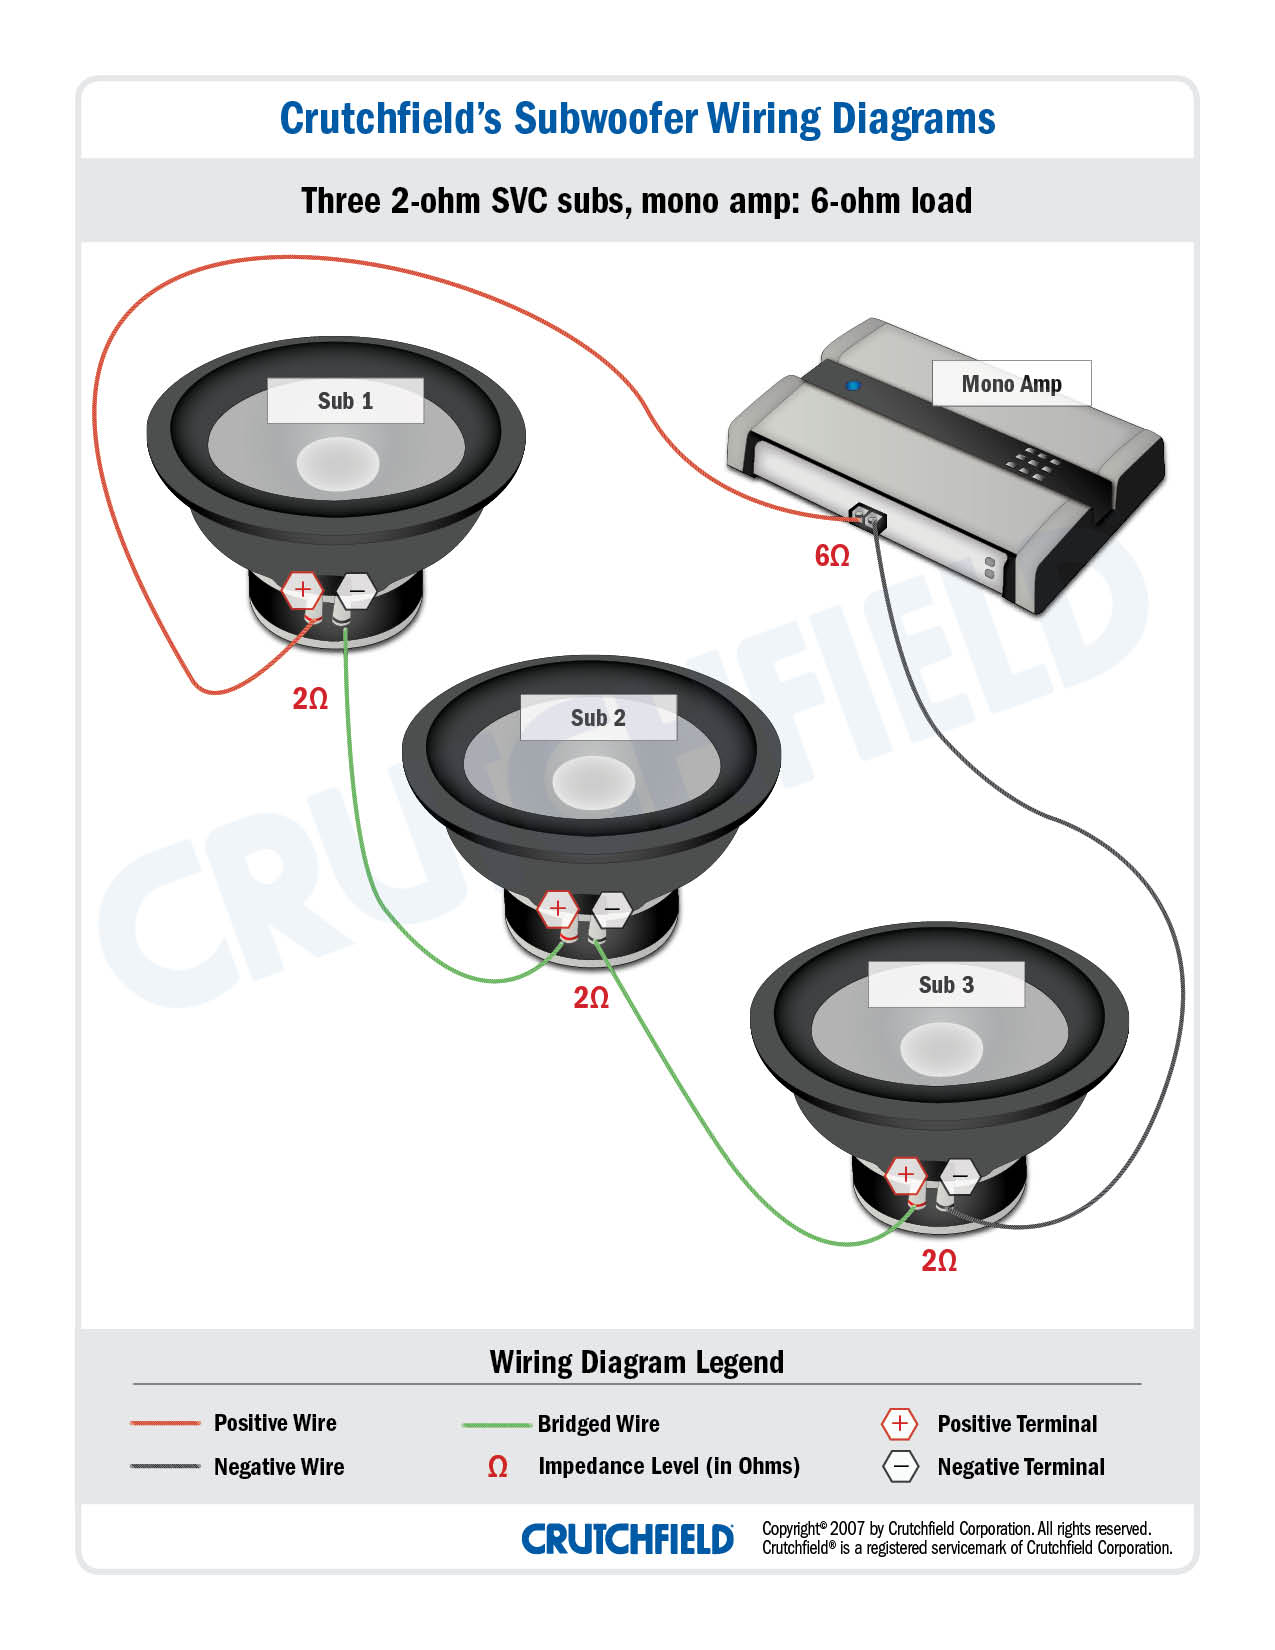 4 Ohm Speaker Wiring Diagram - Wiring Diagram •  Ohm Speaker Wiring Diagrams on ohm guitar speaker diagrams, 2 ohm speaker wiring diagrams, 12 ohm speaker wiring diagrams, 16 ohm speakers in series,